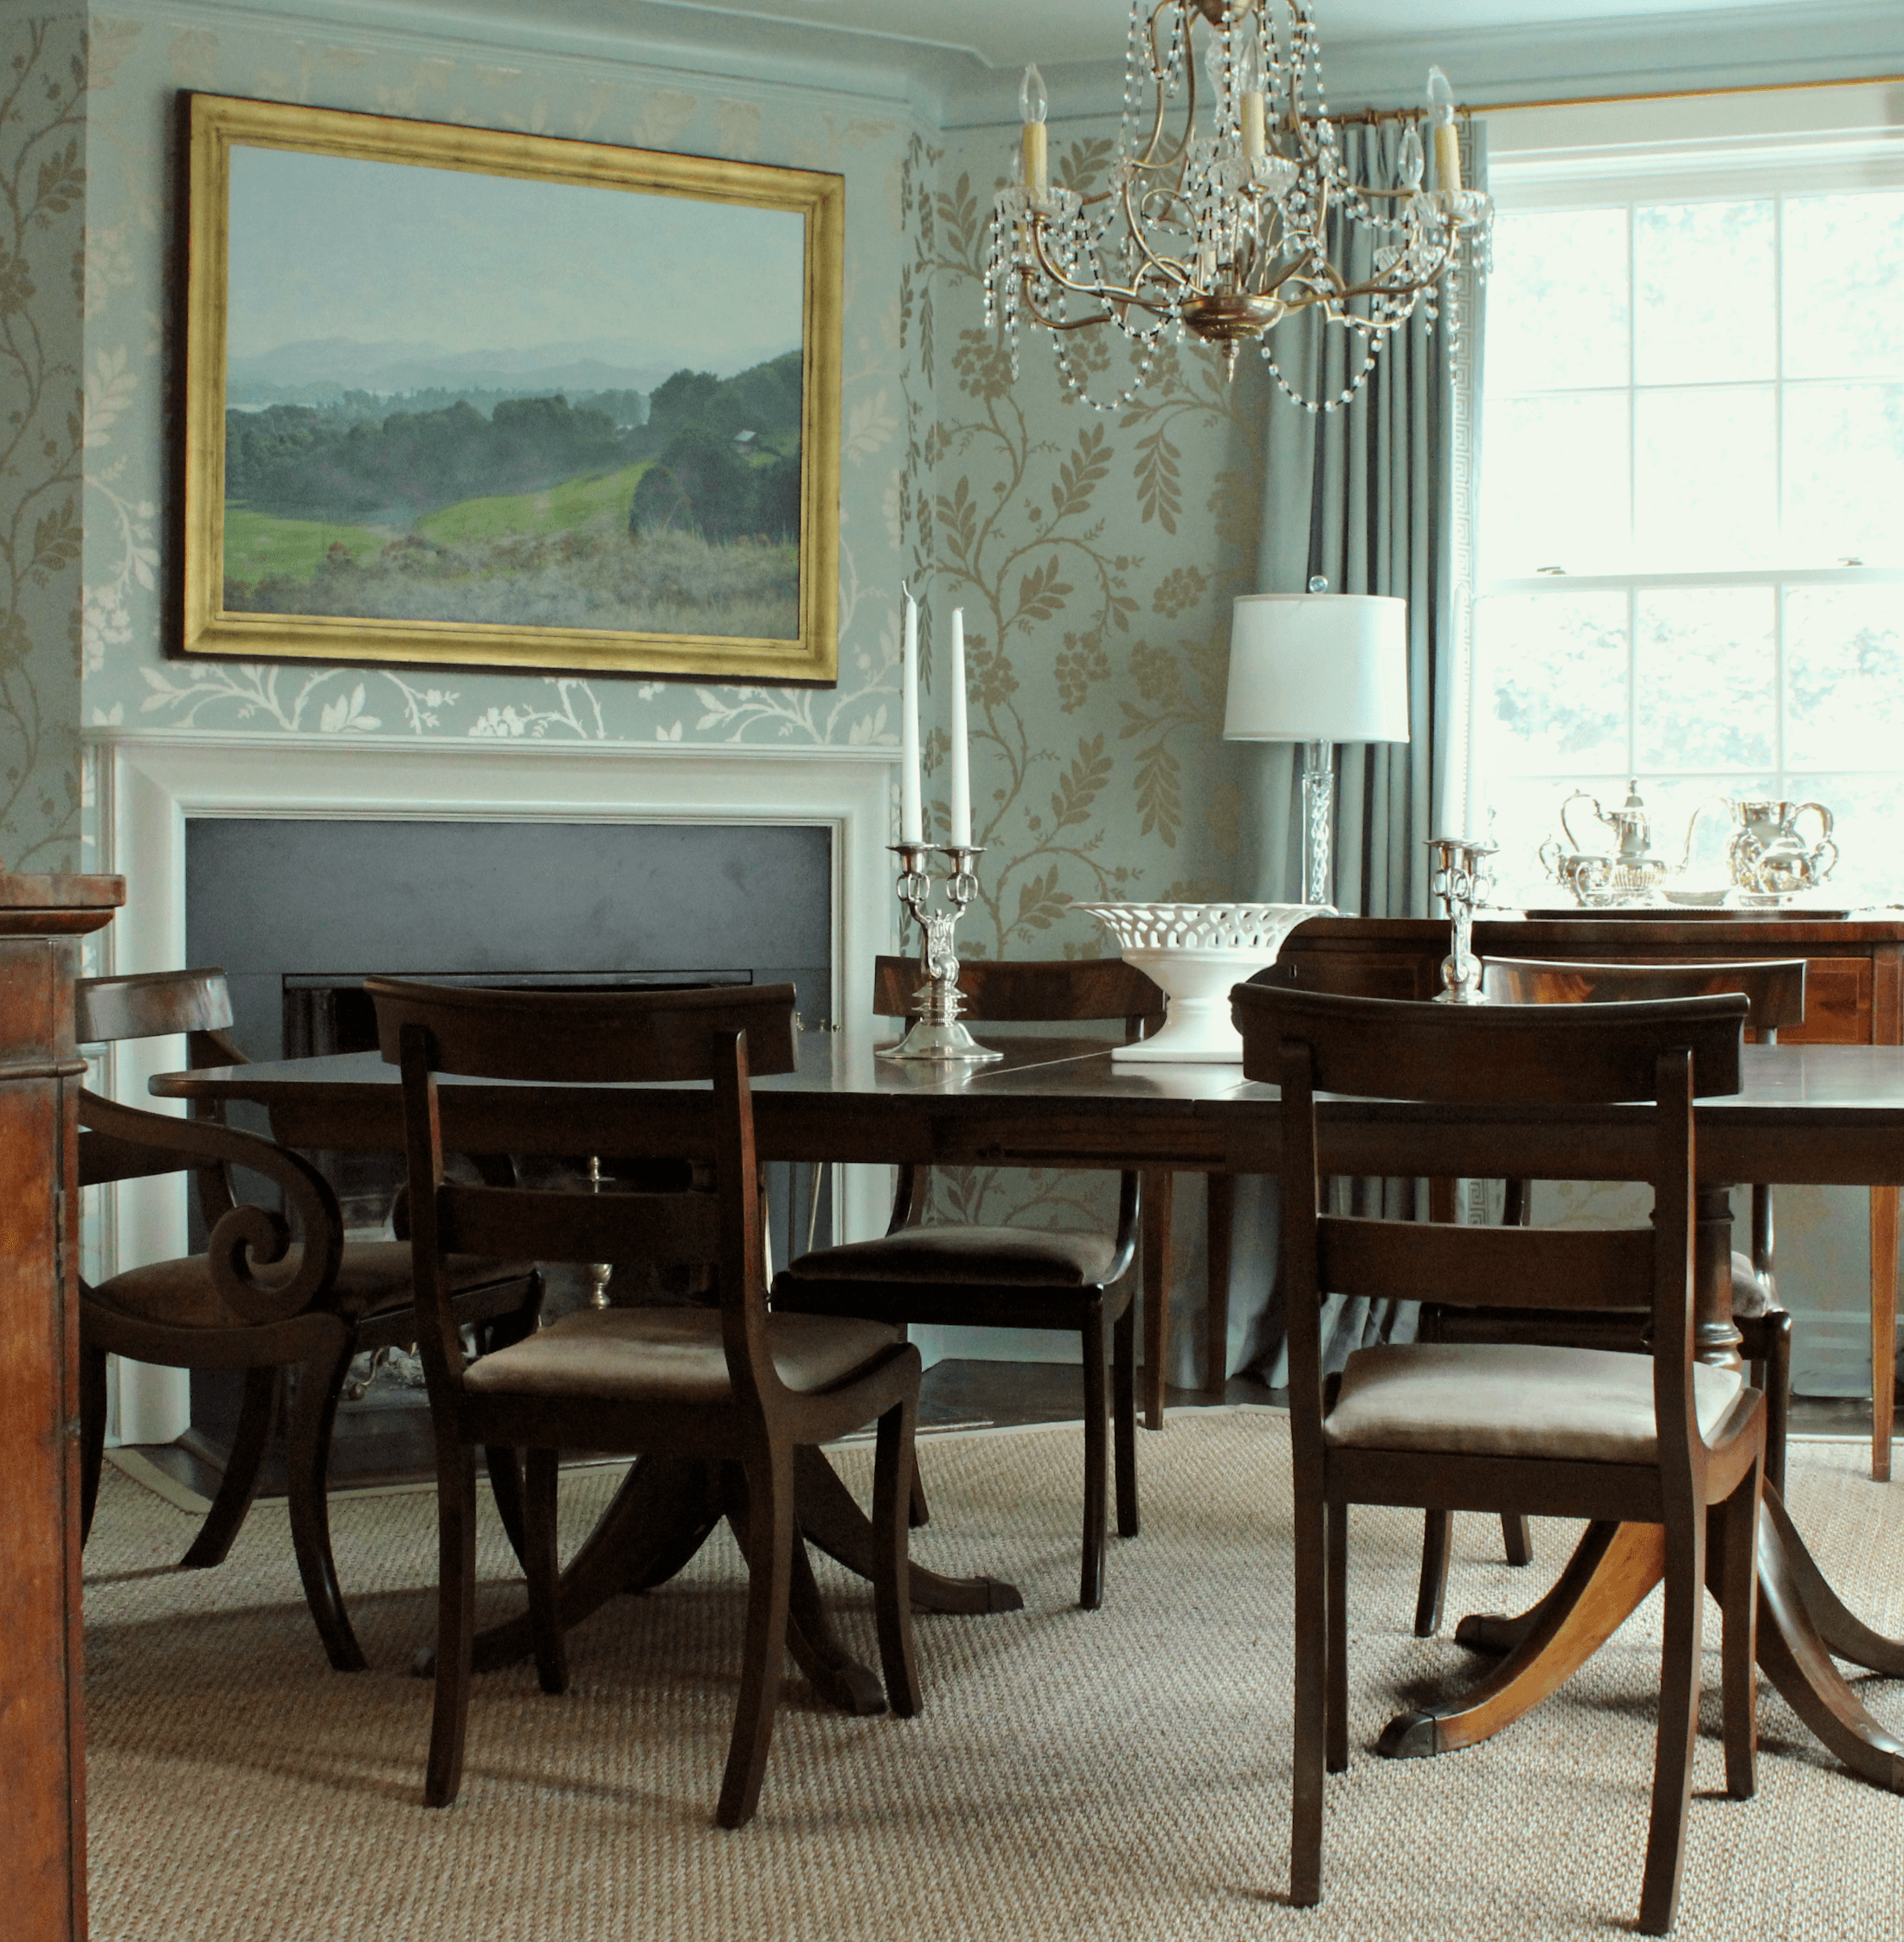 32 Elegant Ideas For Dining Rooms: A Home For Elegant Entertaining Yet Durable For A Family